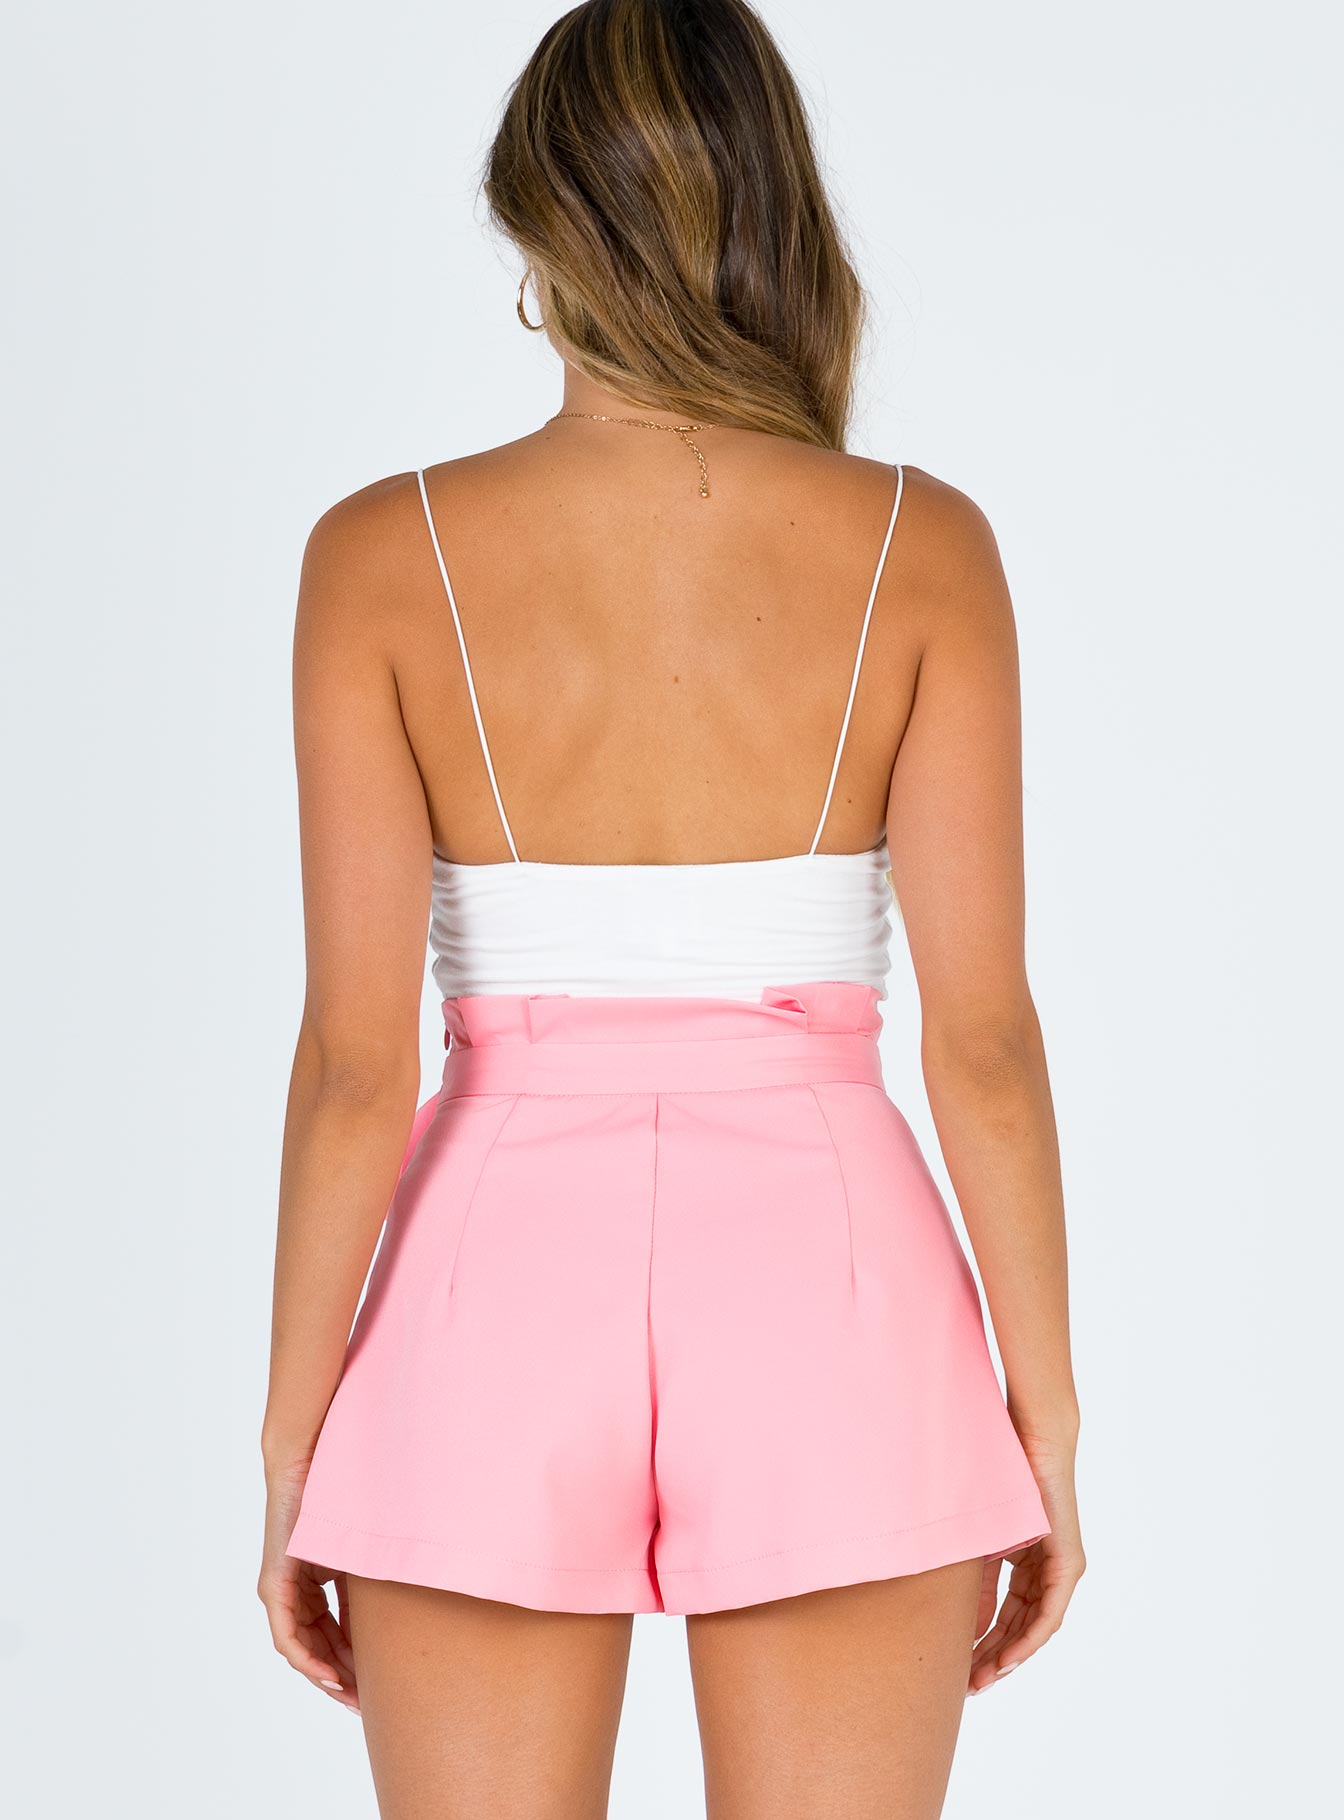 I Need You Shorts Pink